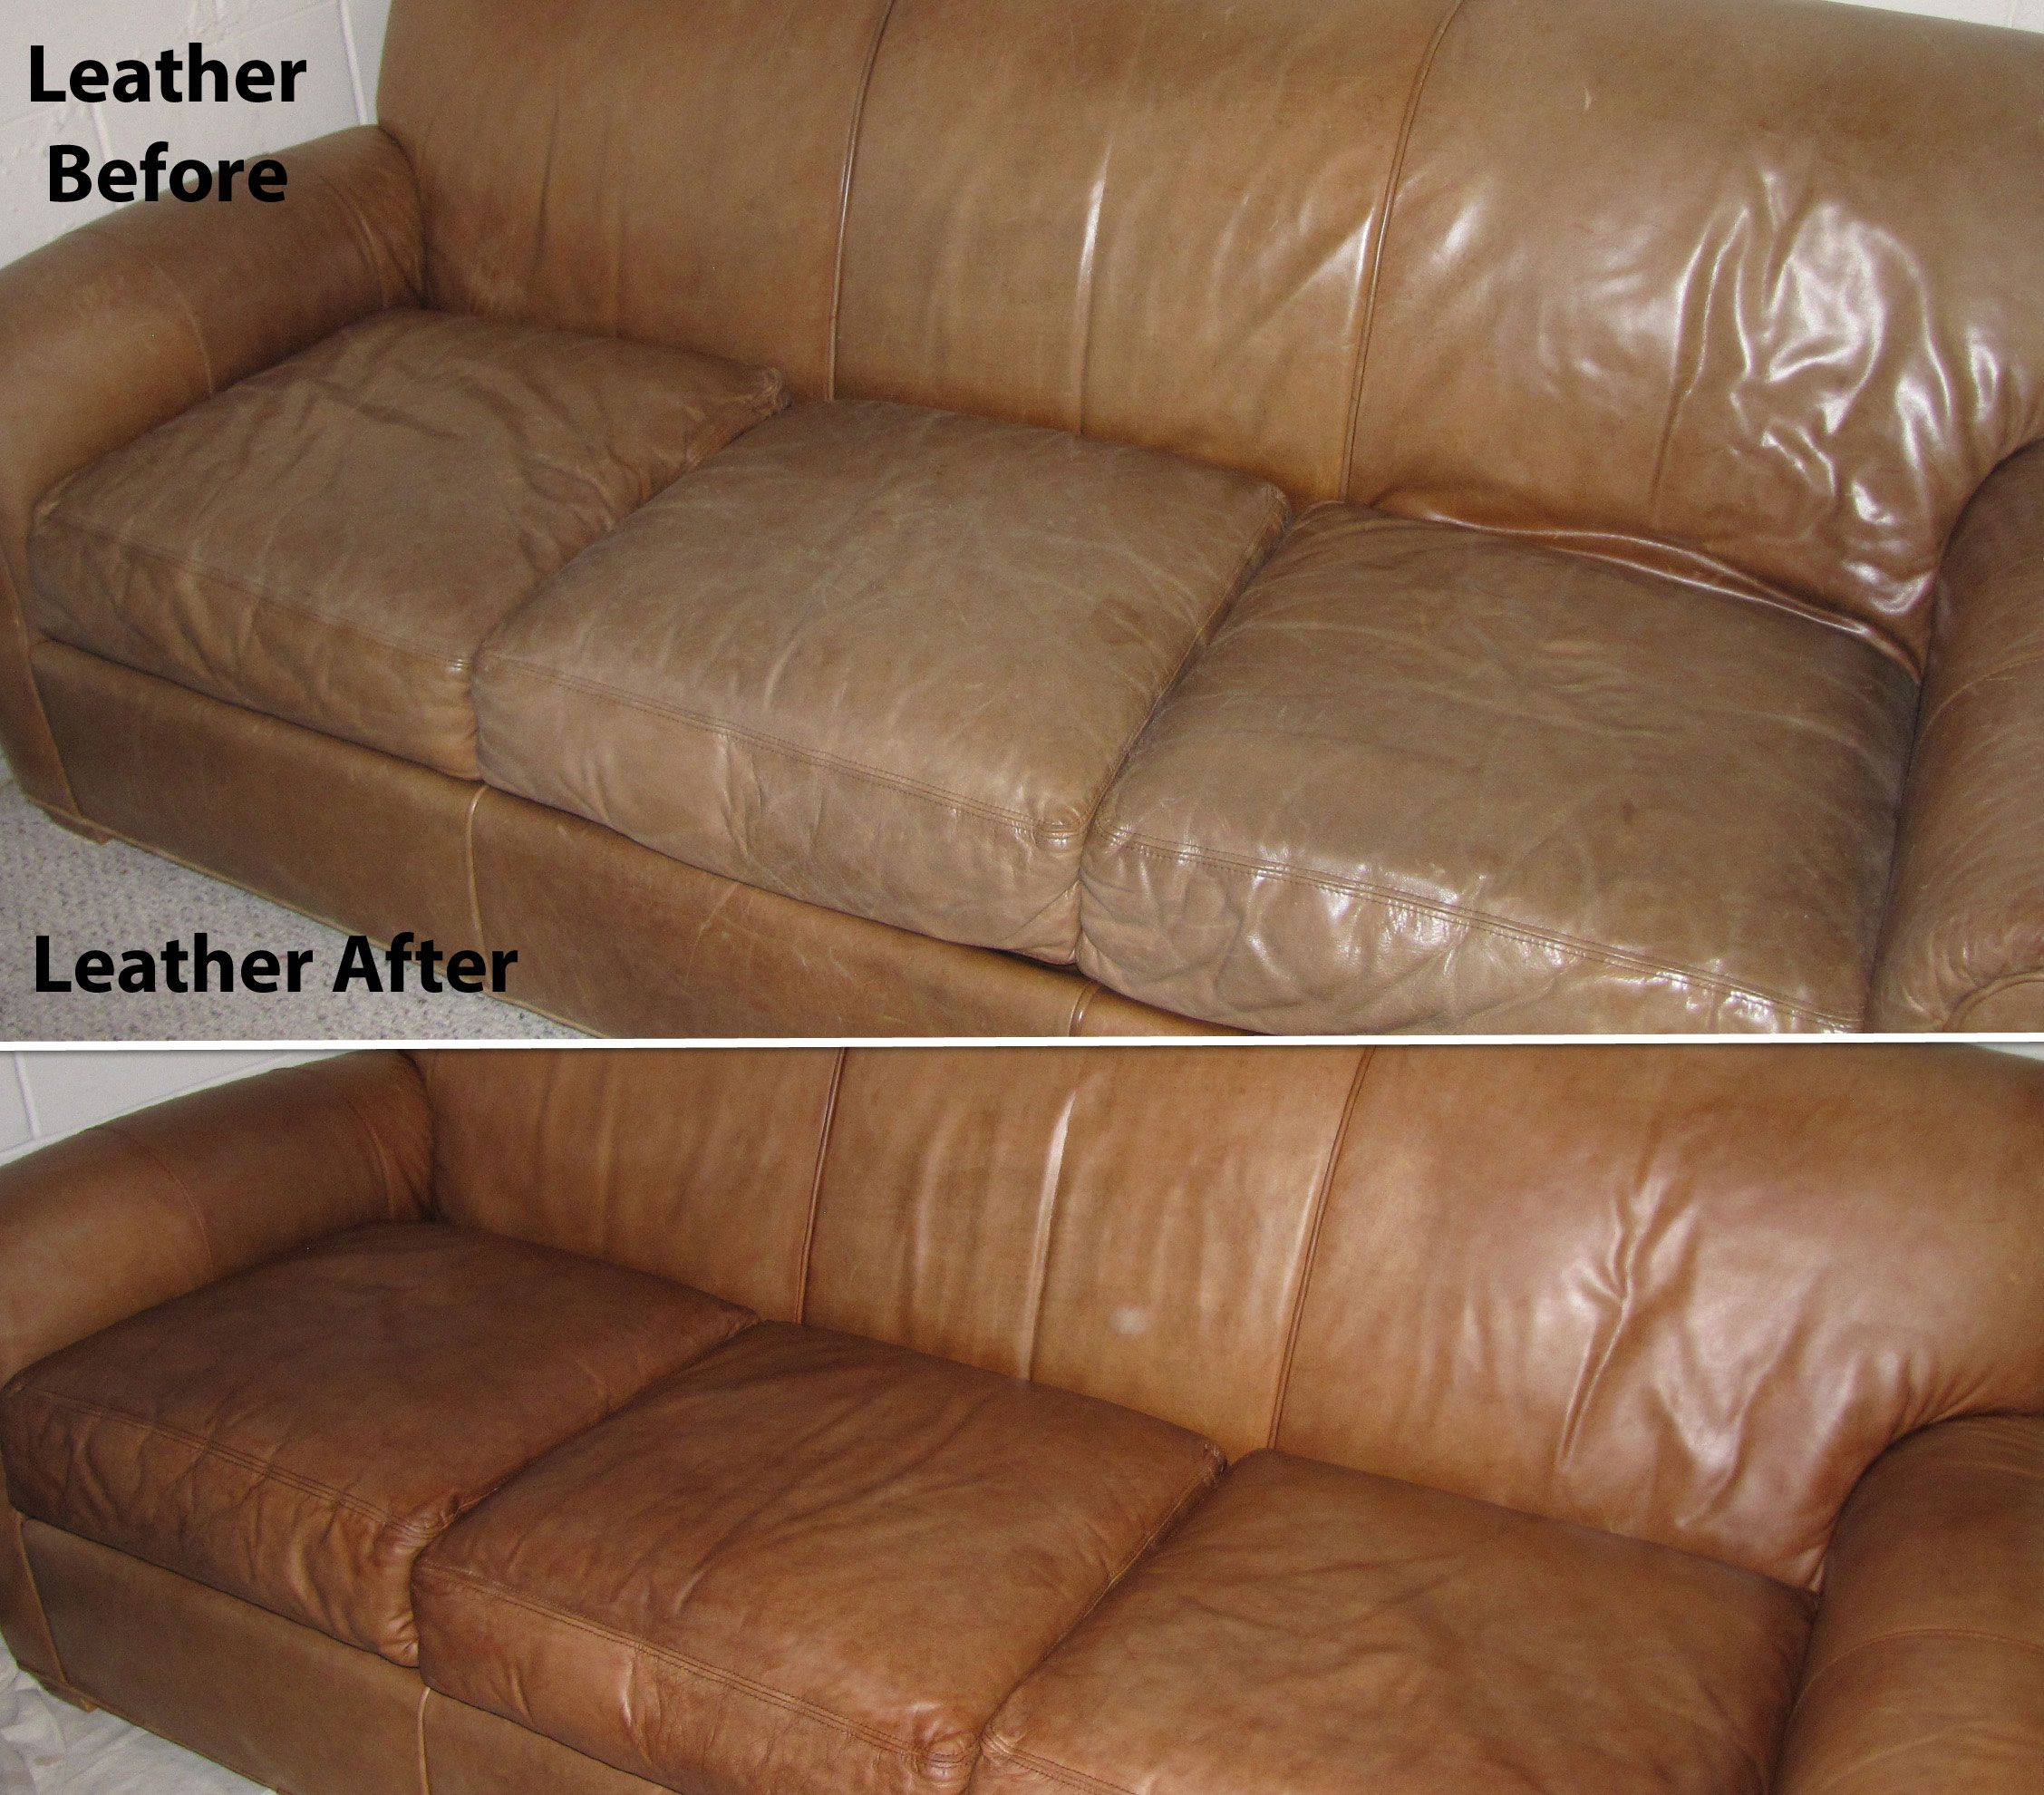 Leather Sofa Dry Cleaning Services Noida Leather Sofa Clean